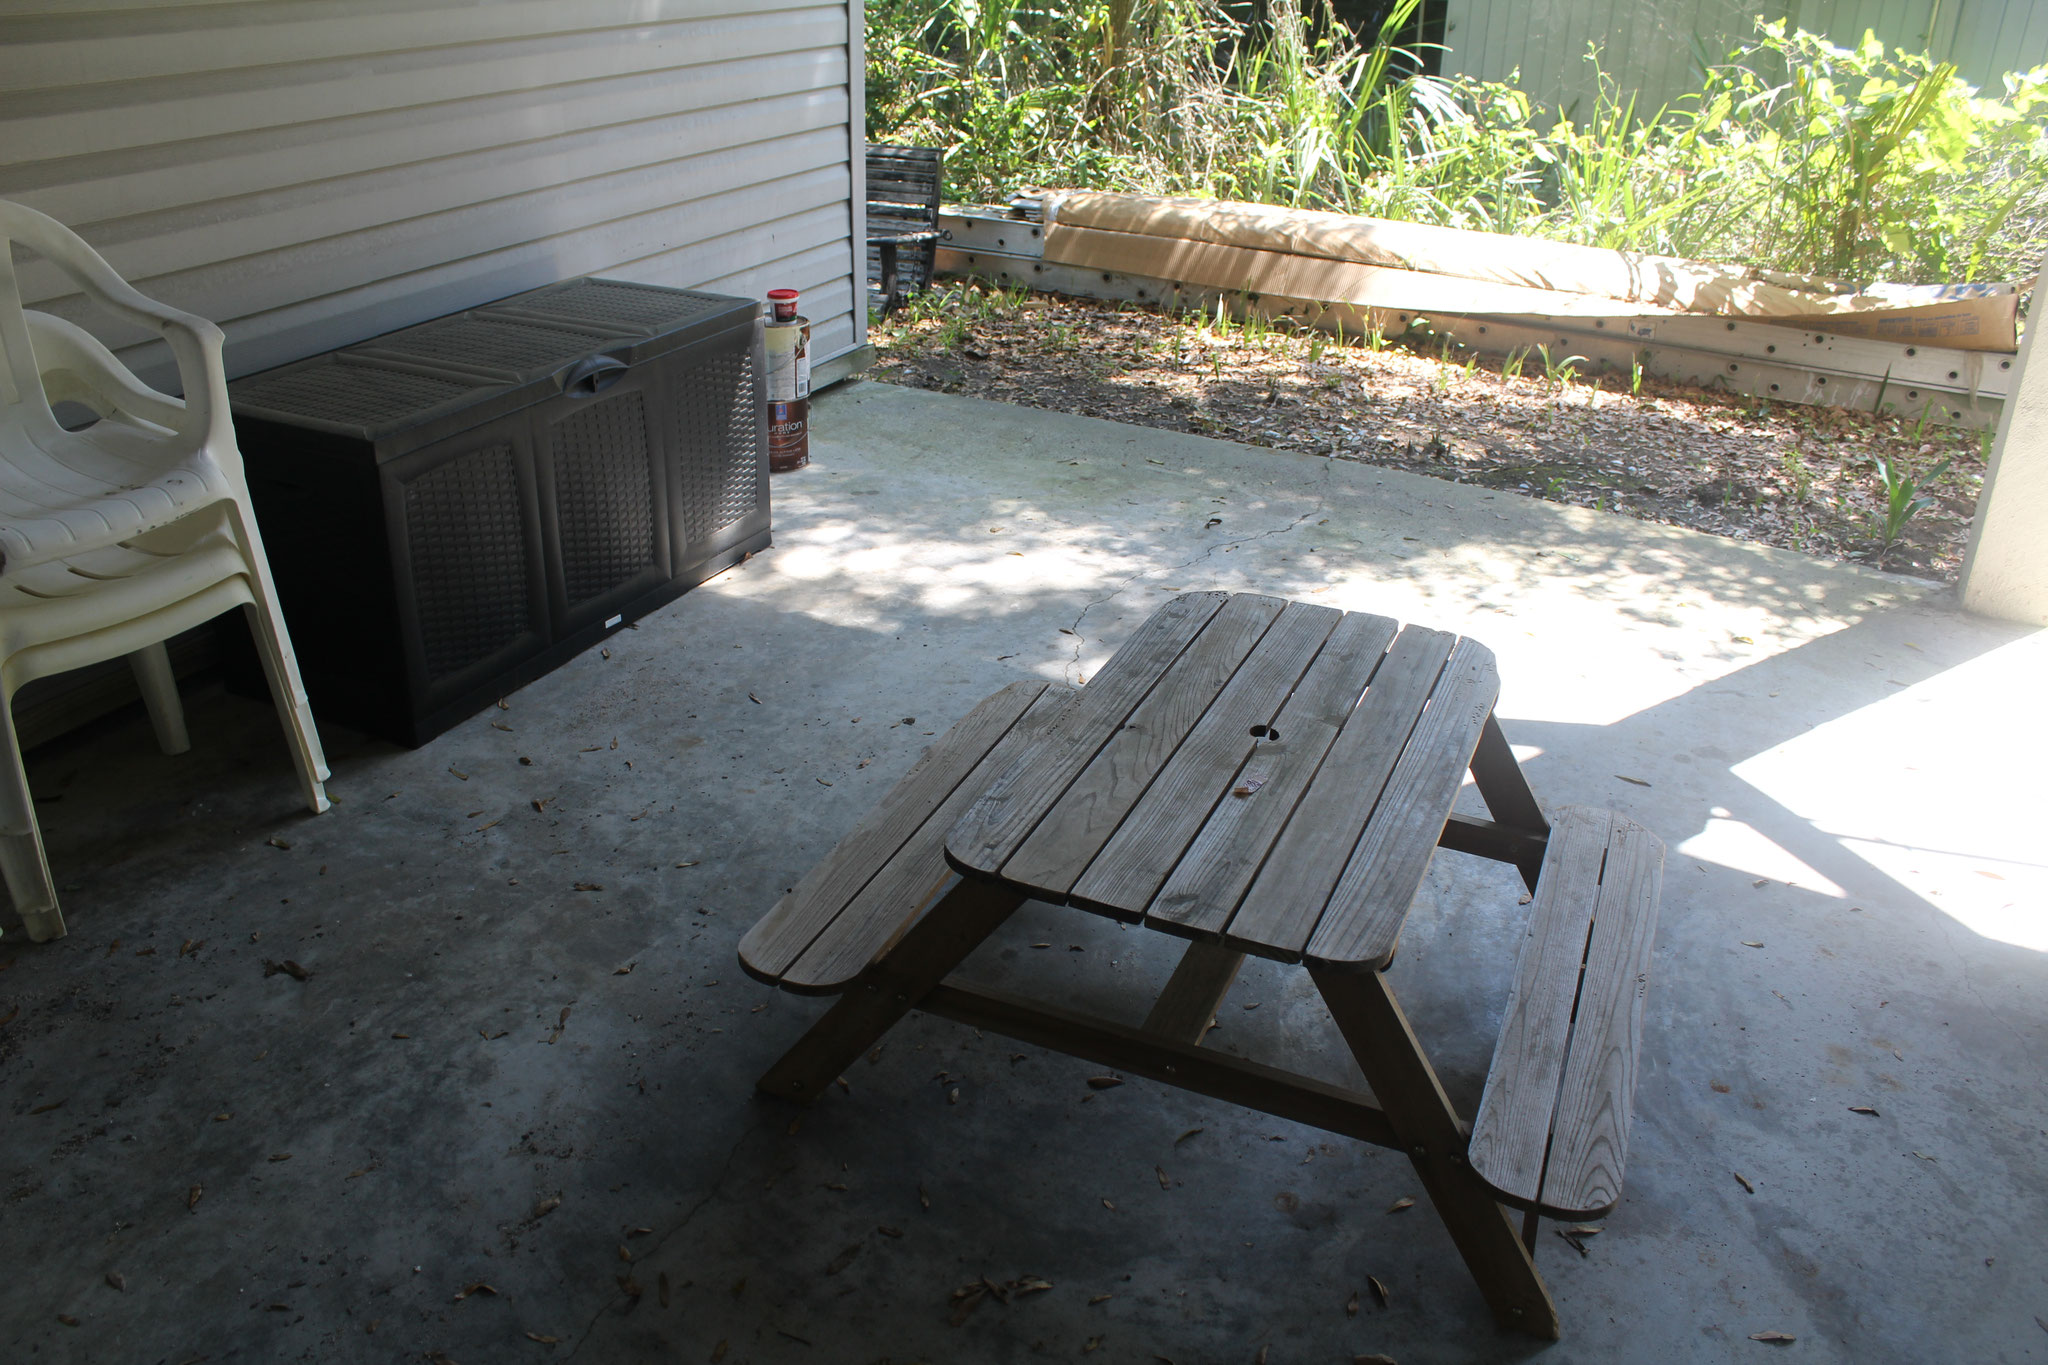 The kids' picnic table.